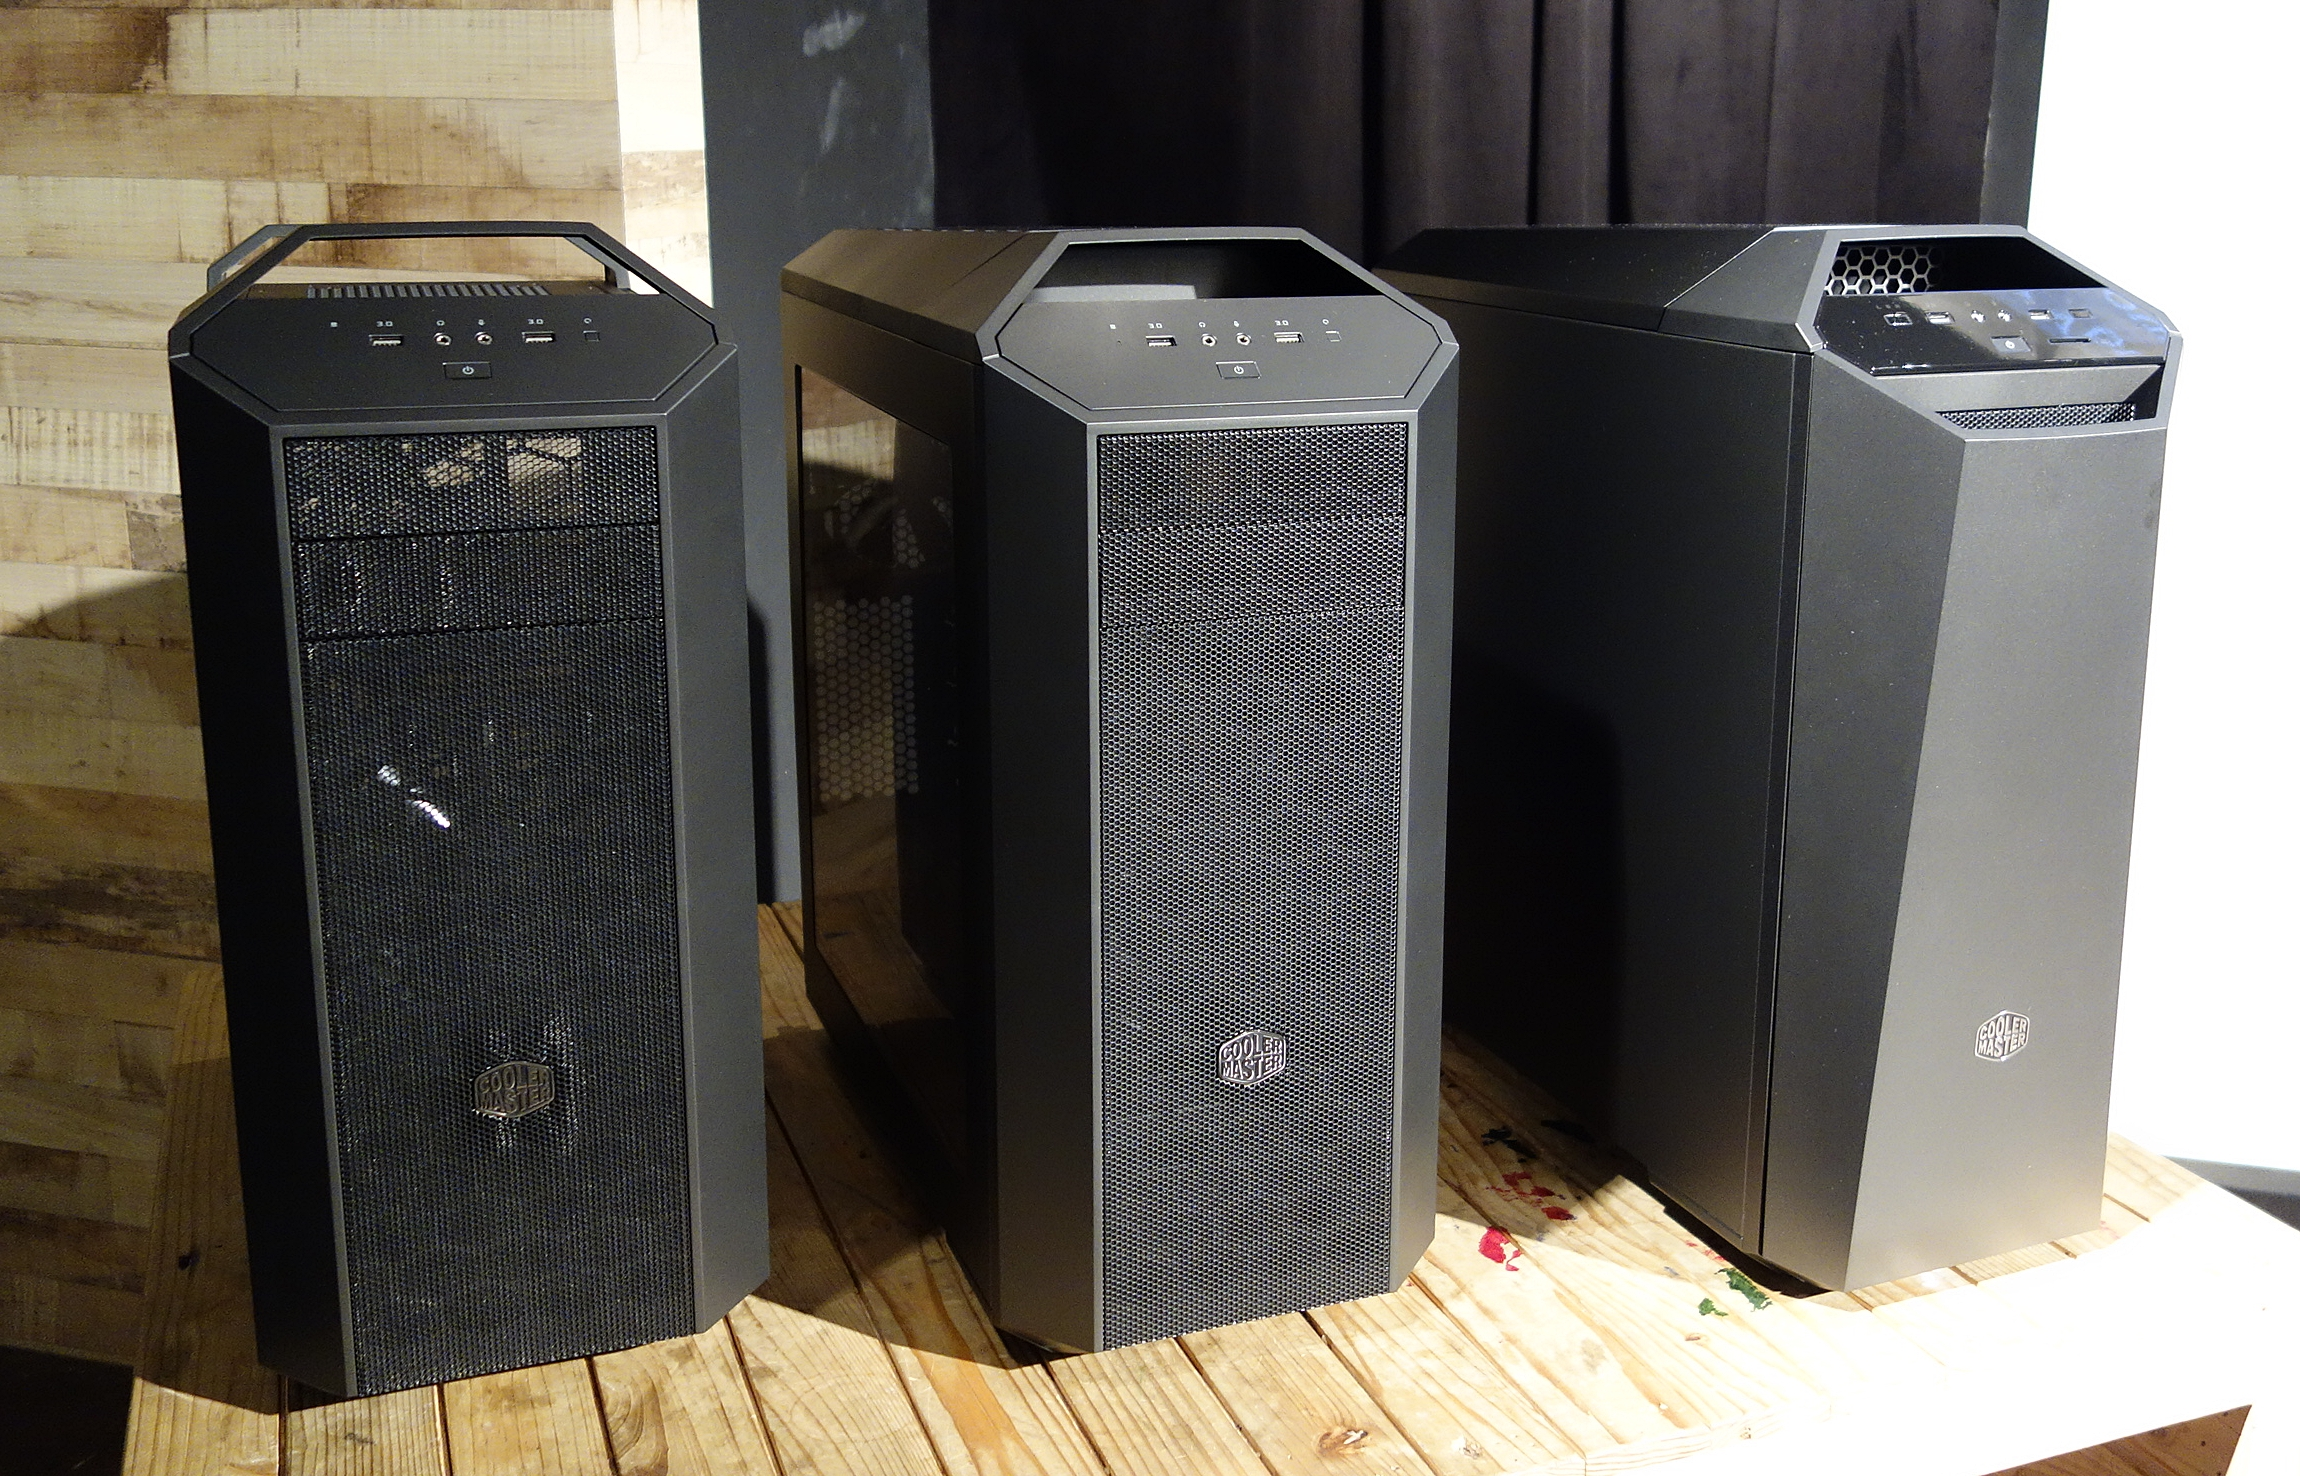 On the left is the MasterCase 5, the MasterCase Maker is on the extreme right, and MasterCase 5 Pro is tucked in-between.